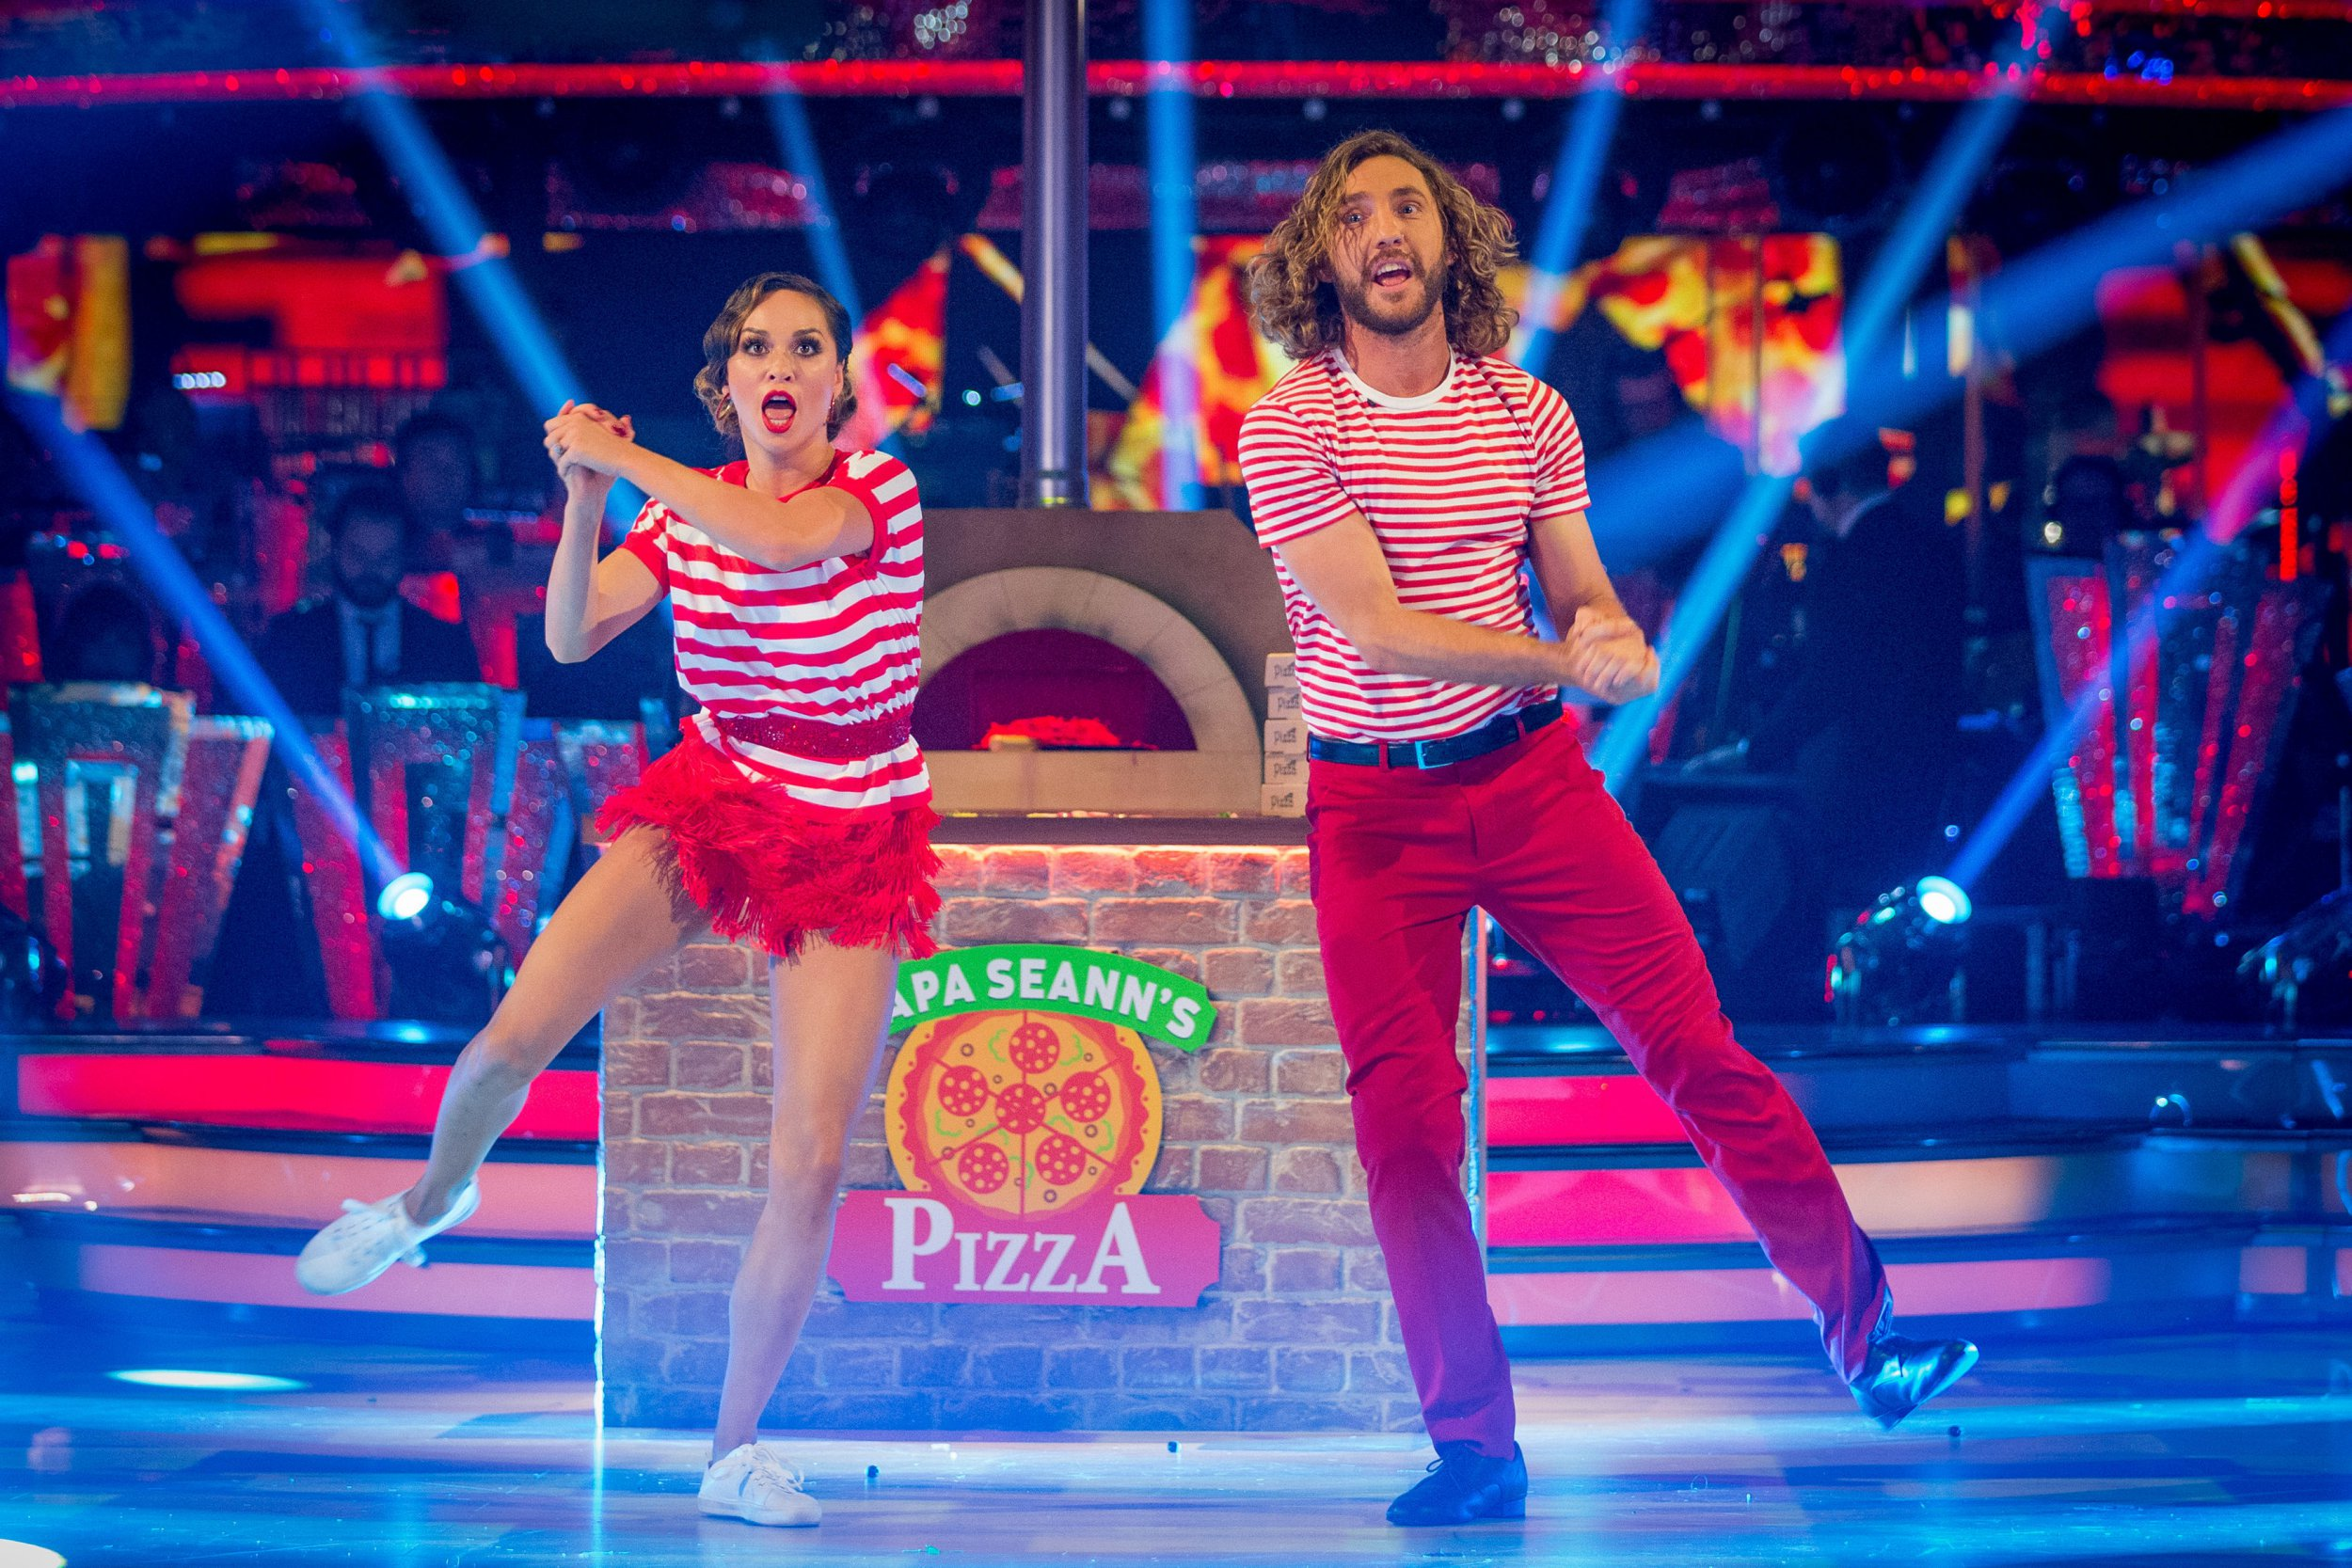 For use in UK, Ireland or Benelux countries only Undated BBC handout photo of Katya Jones and Seann Walsh. PRESS ASSOCIATION Photo. Issue date: Saturday October 13, 2018. See PA story SHOWBIZ Strictly. Photo credit should read: Guy Levy/BBC/PA Wire NOTE TO EDITORS: Not for use more than 21 days after issue. You may use this picture without charge only for the purpose of publicising or reporting on current BBC programming, personnel or other BBC output or activity within 21 days of issue. Any use after that time MUST be cleared through BBC Picture Publicity. Please credit the image to the BBC and any named photographer or independent programme maker, as described in th